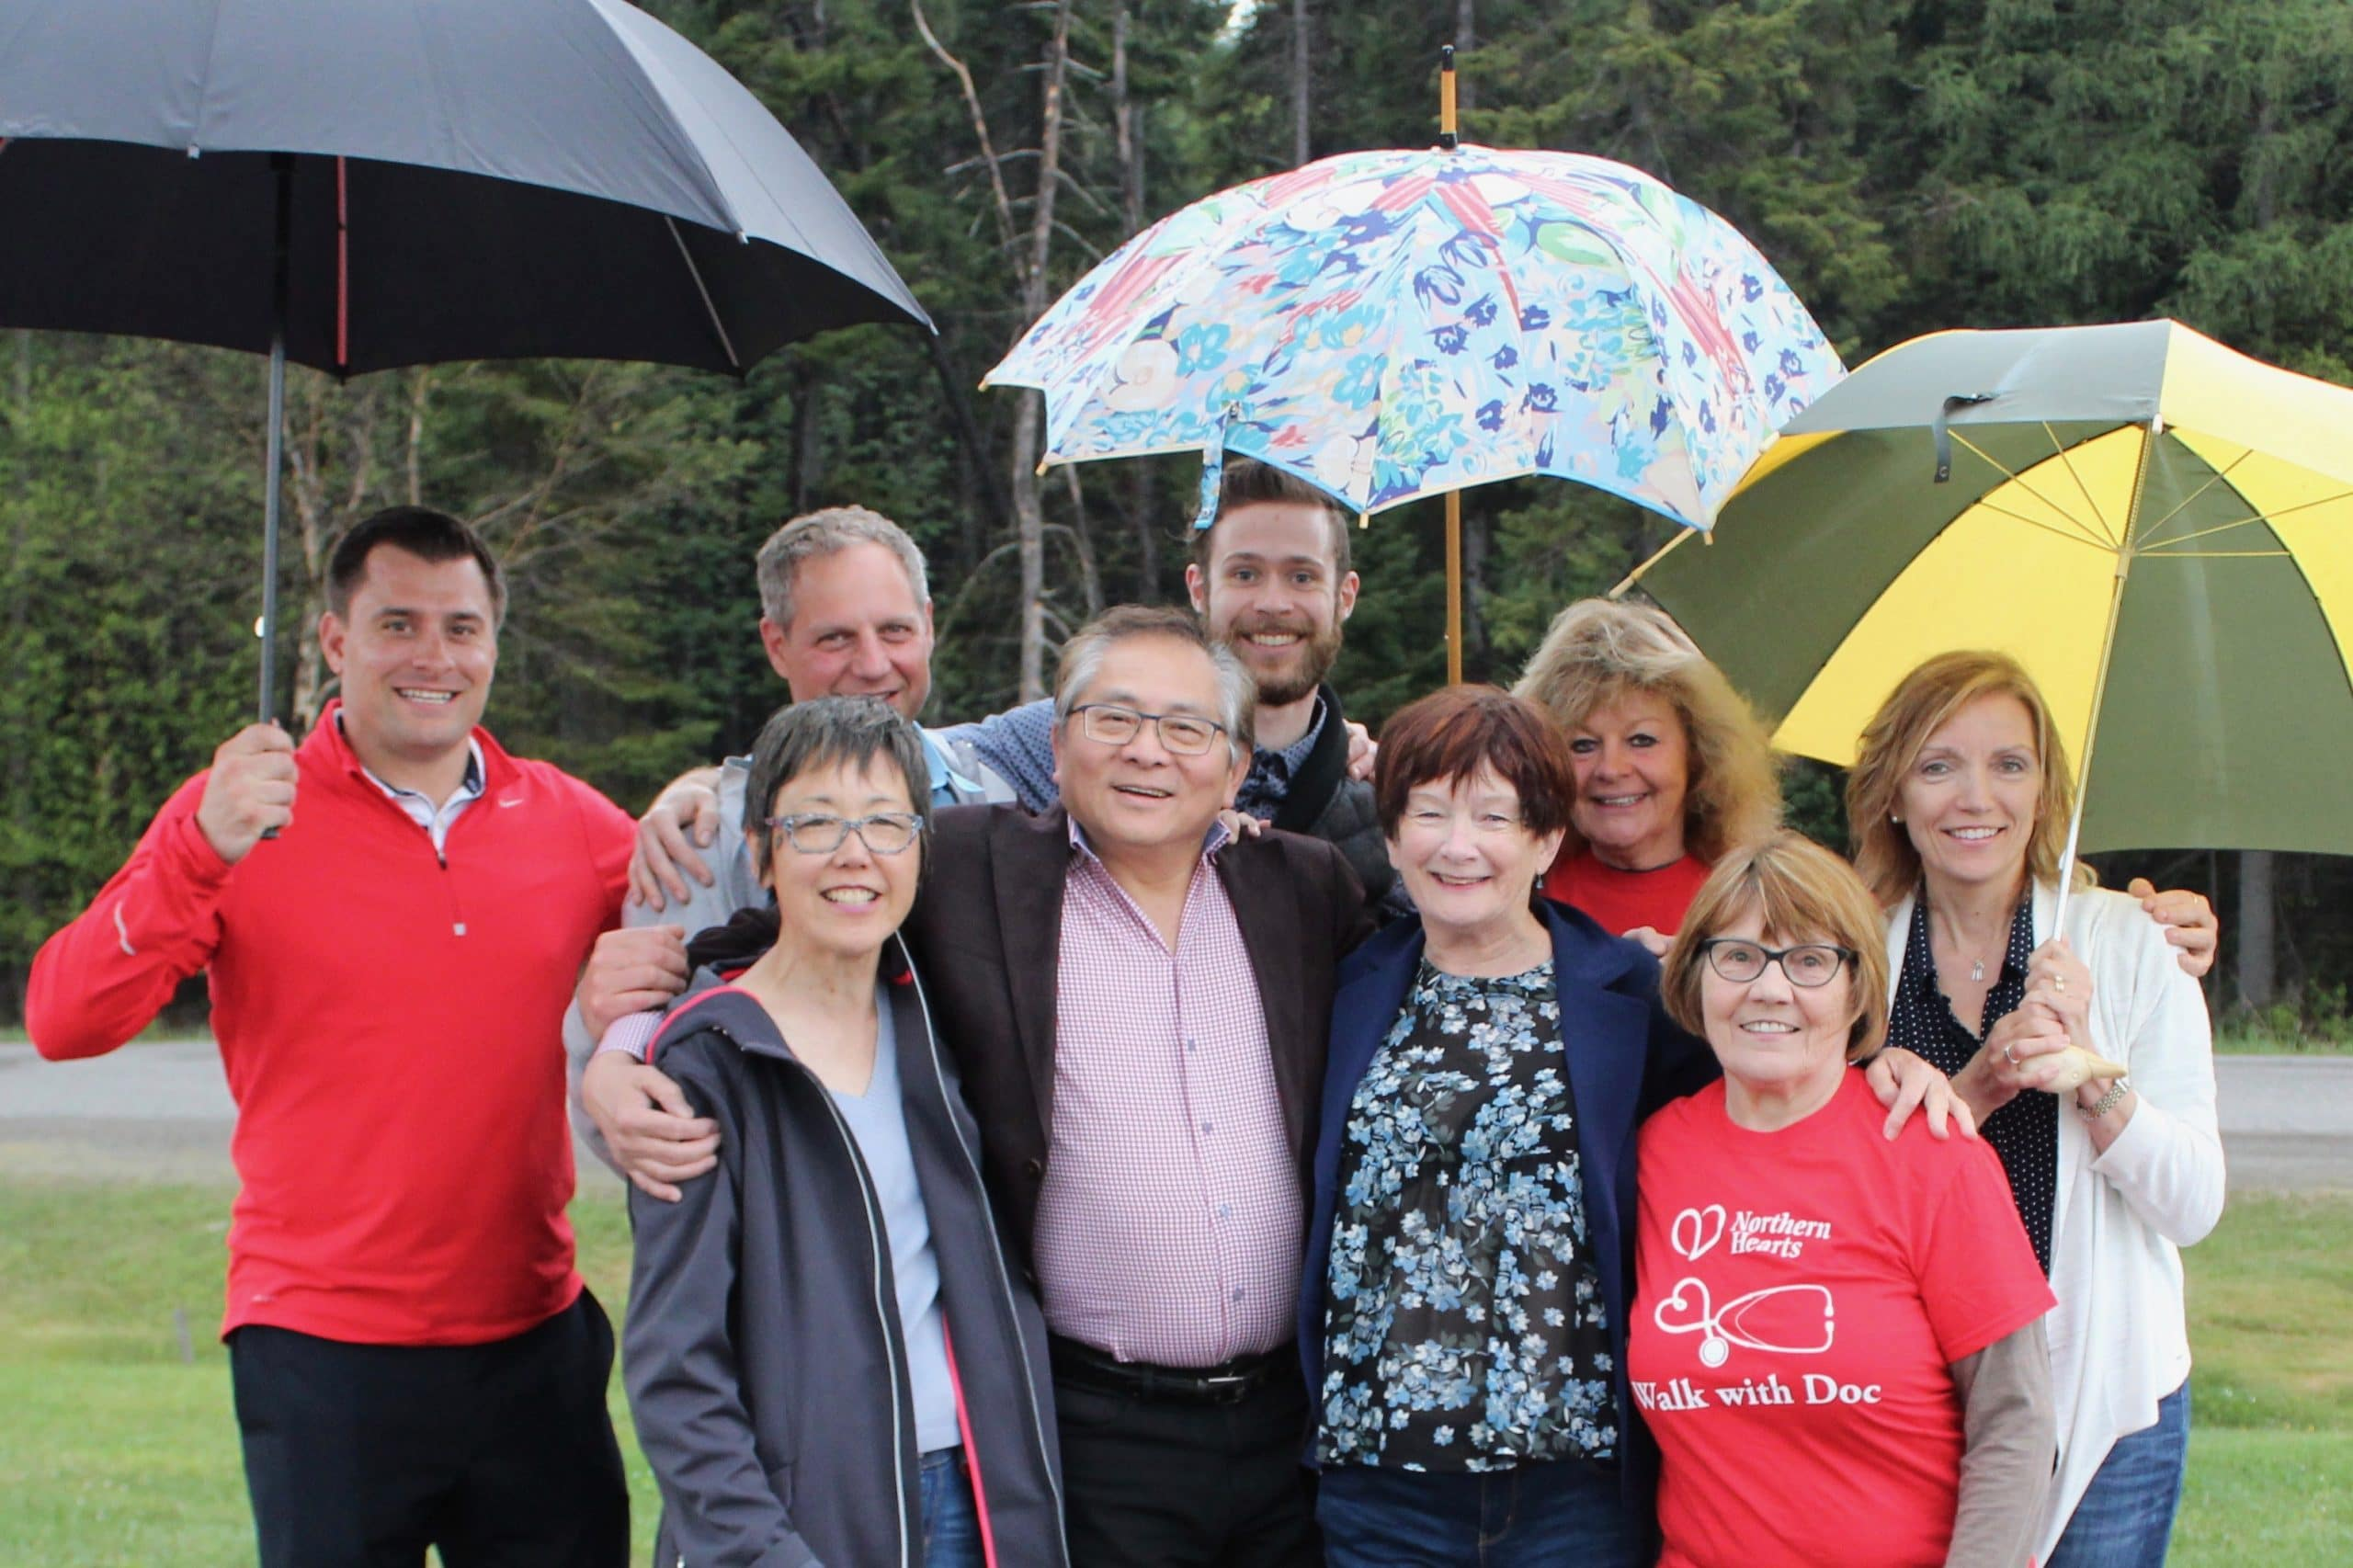 Group of people outside holding umbrellas and smiling